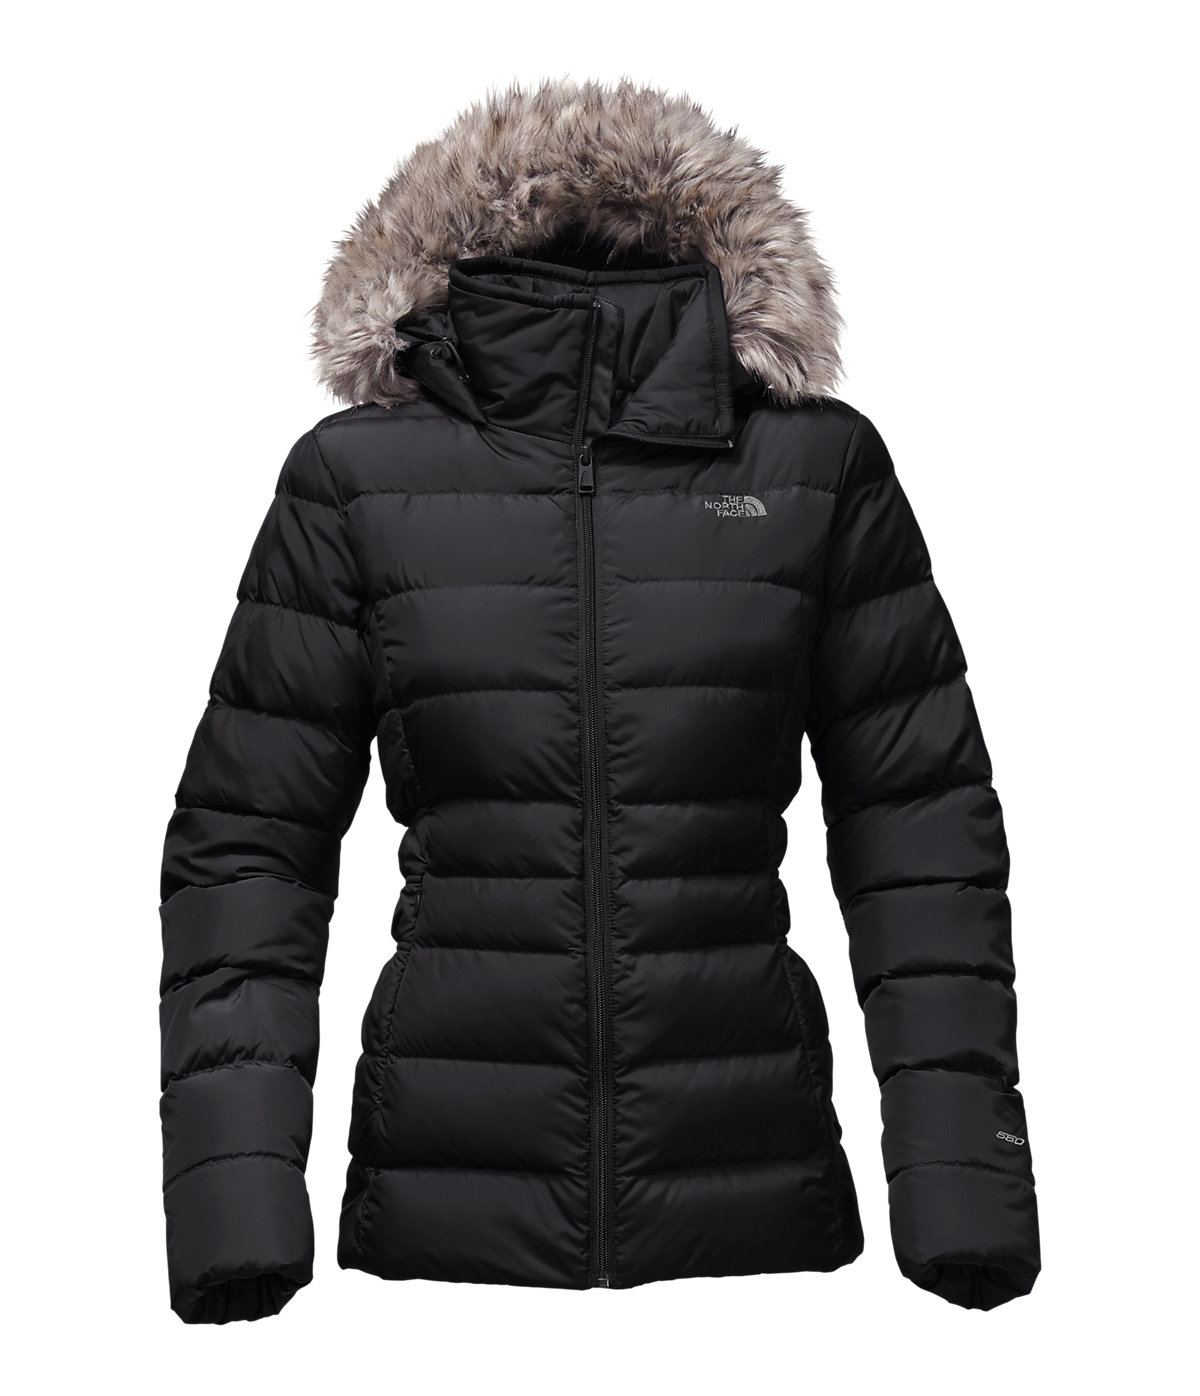 d4260ec93 The North Face WOMEN'S GOTHAM JACKET II